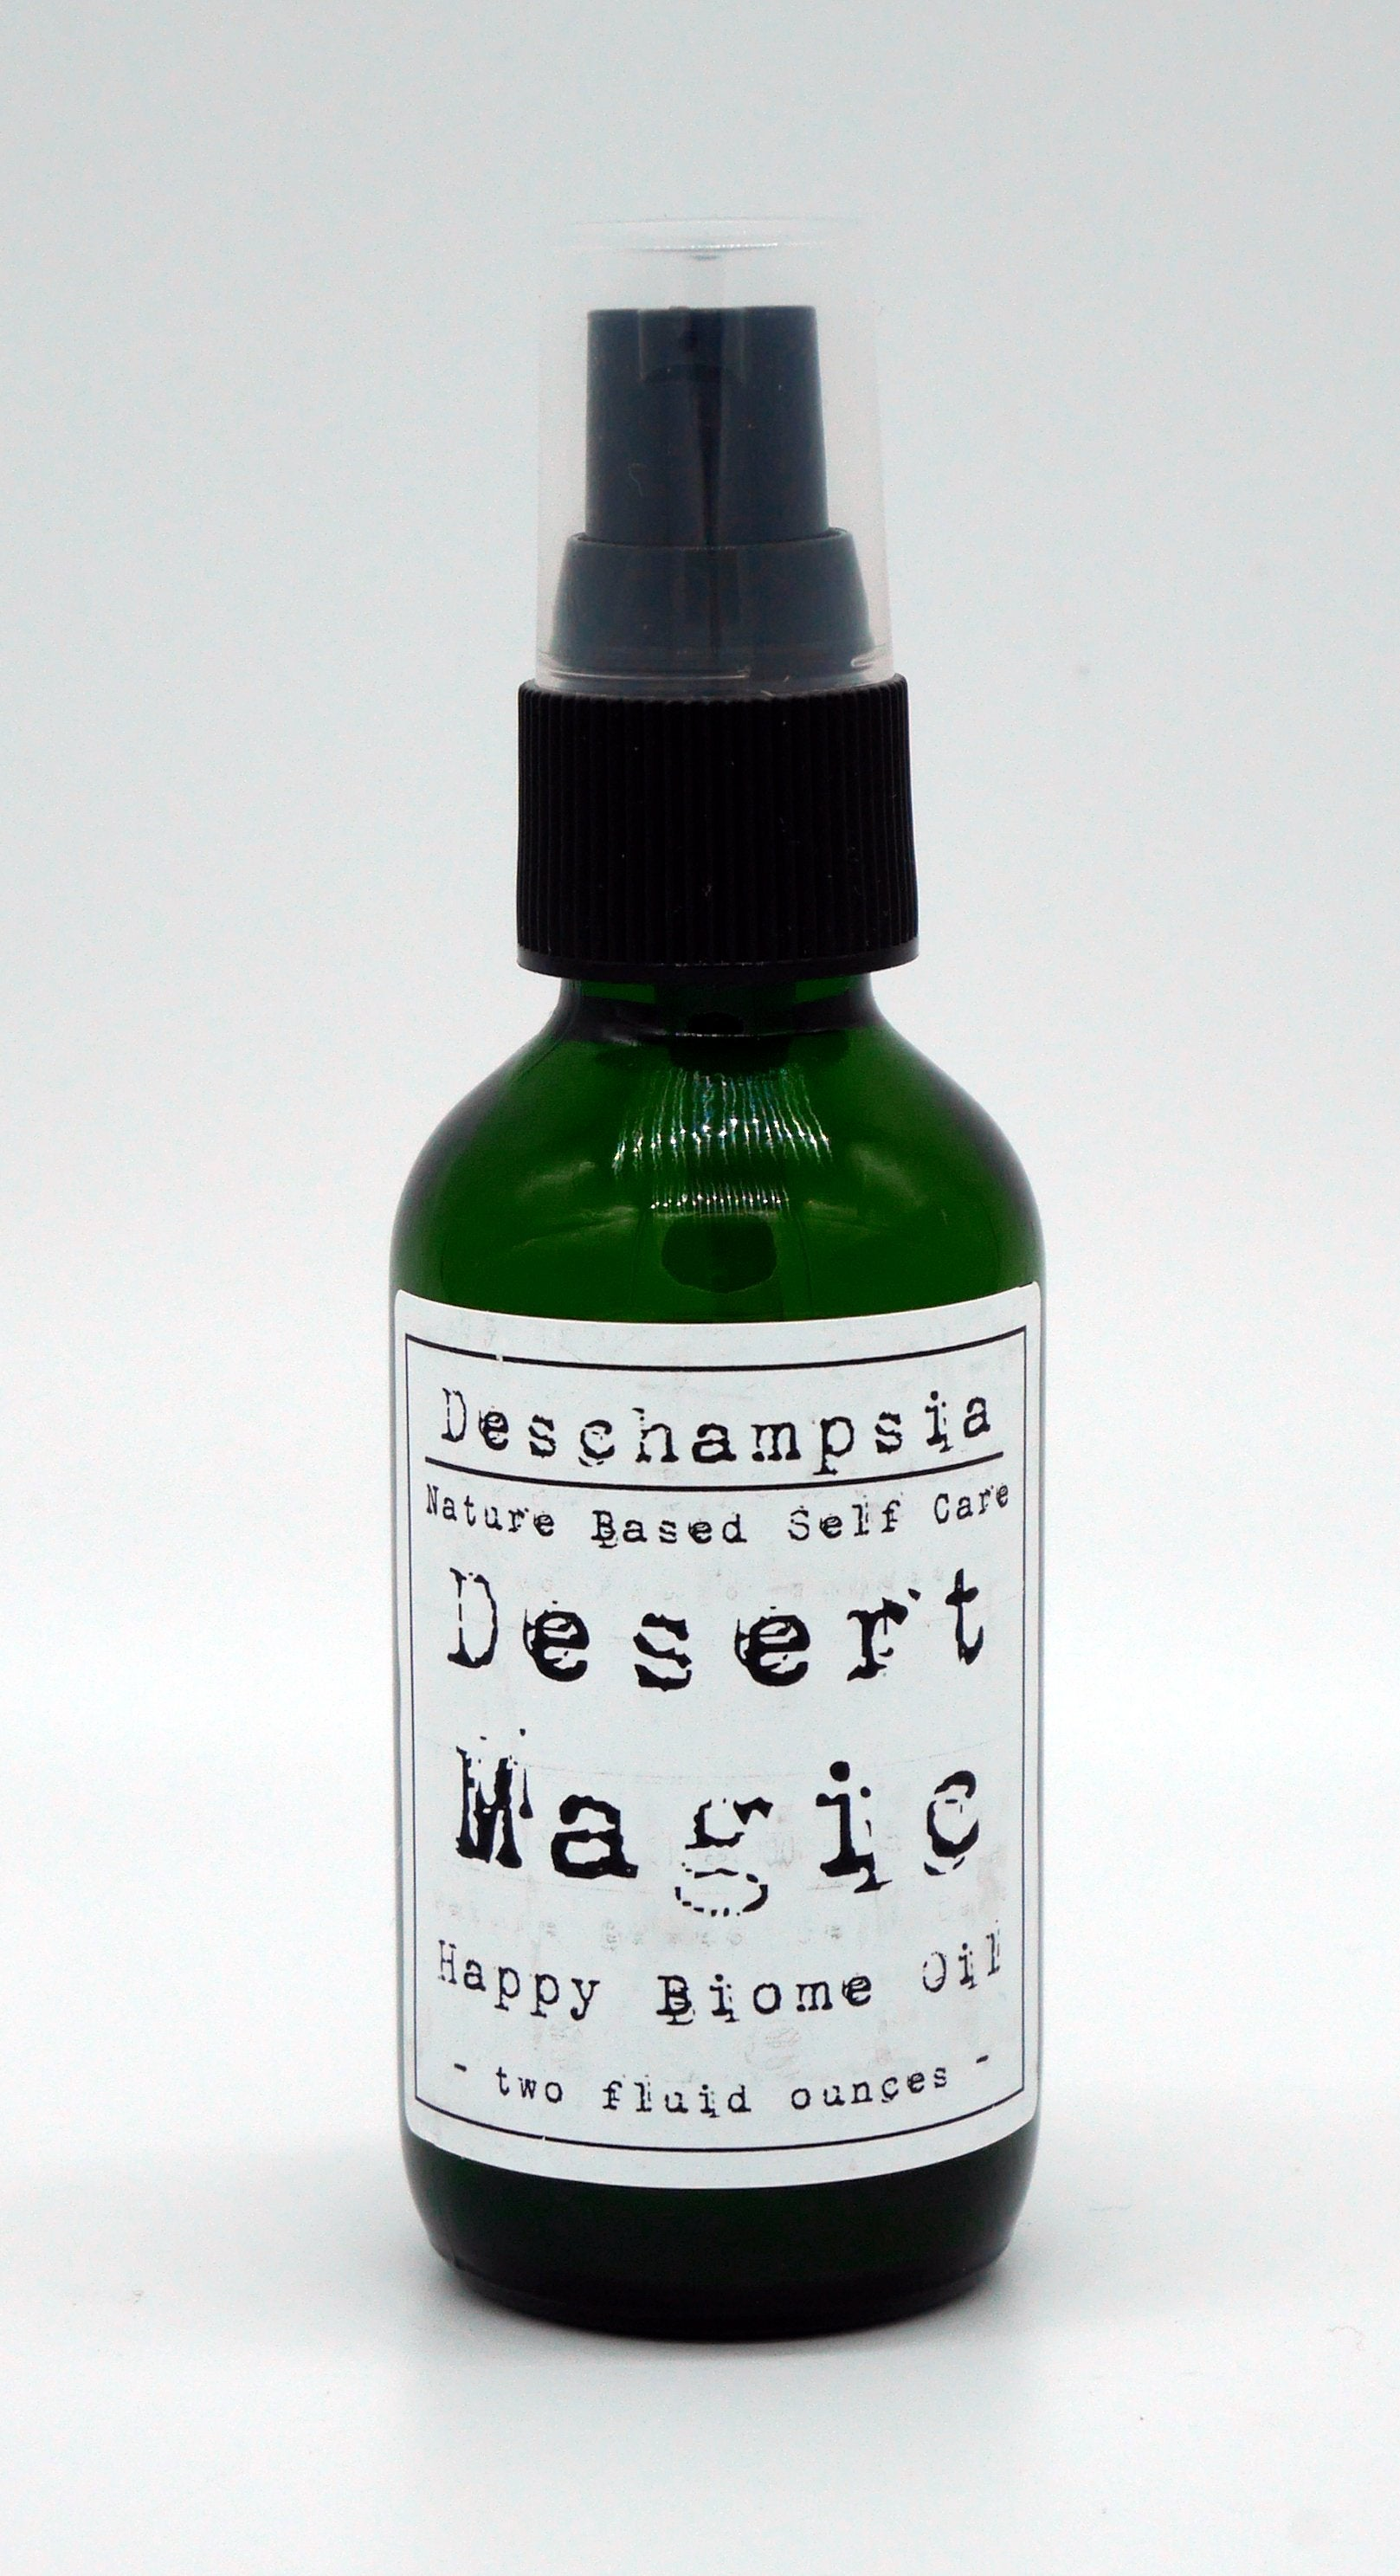 Desert Magic Body Oil - Deschampsia